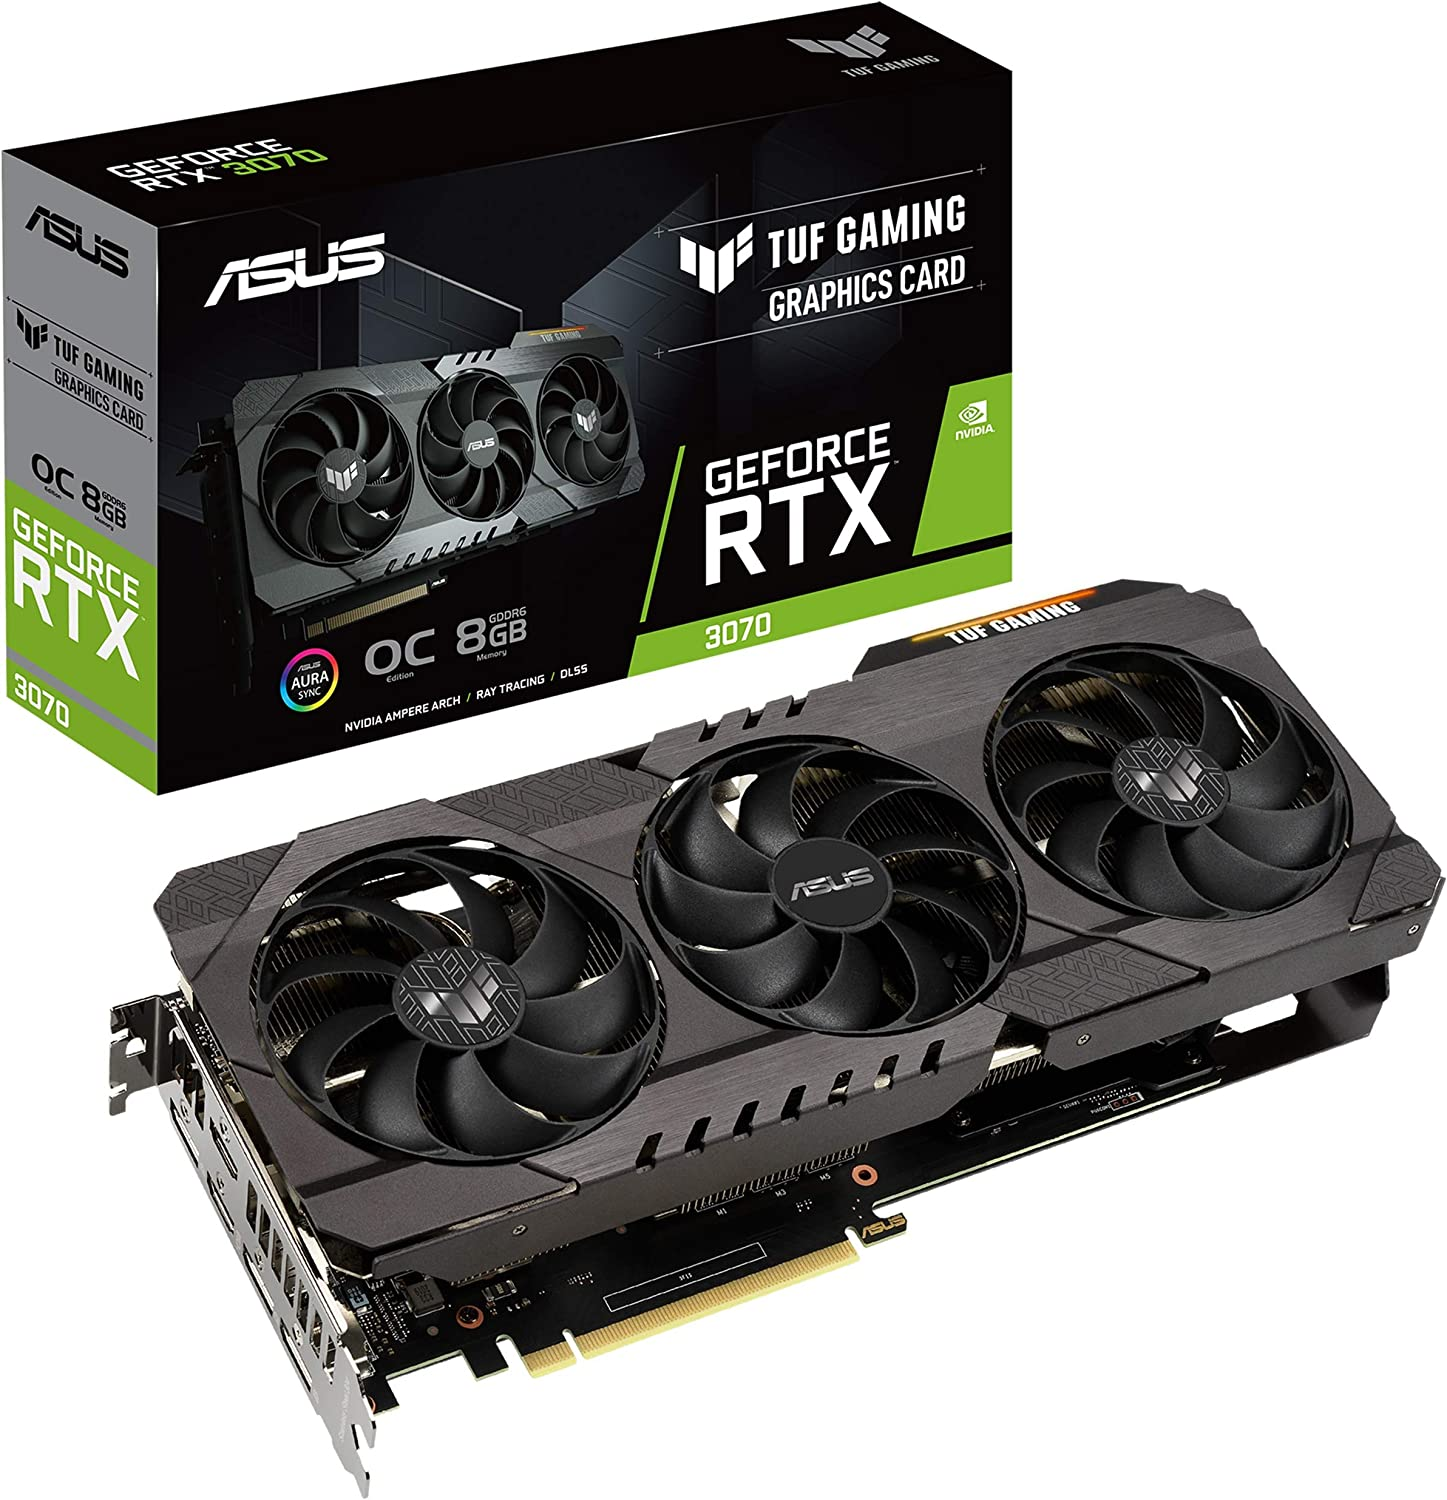 RTX 3070 Graphics Cards for 8K Gaming